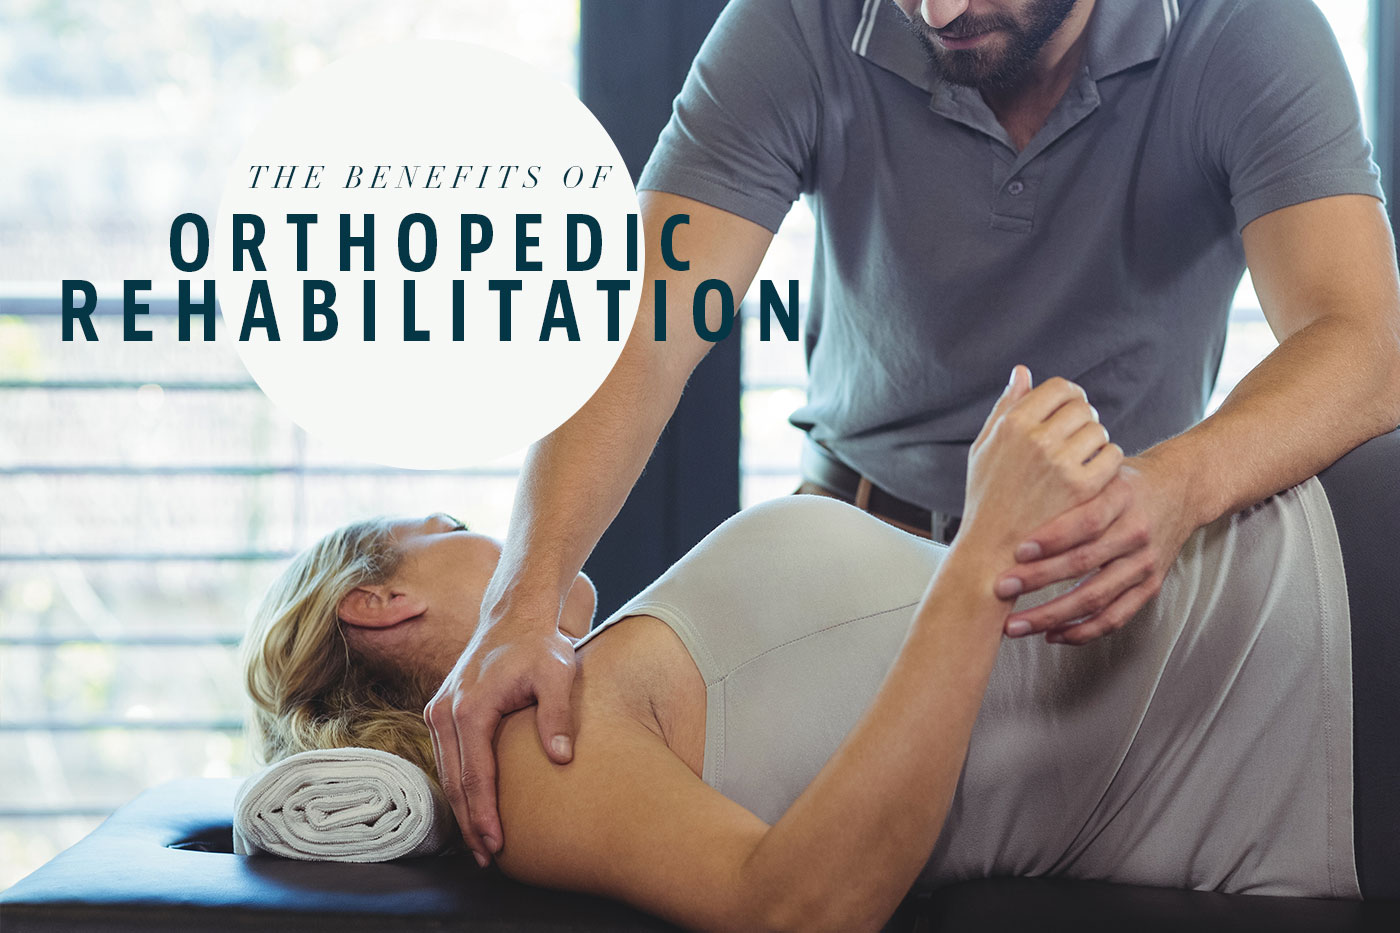 The Benefits of Orthopedic Rehabilitation